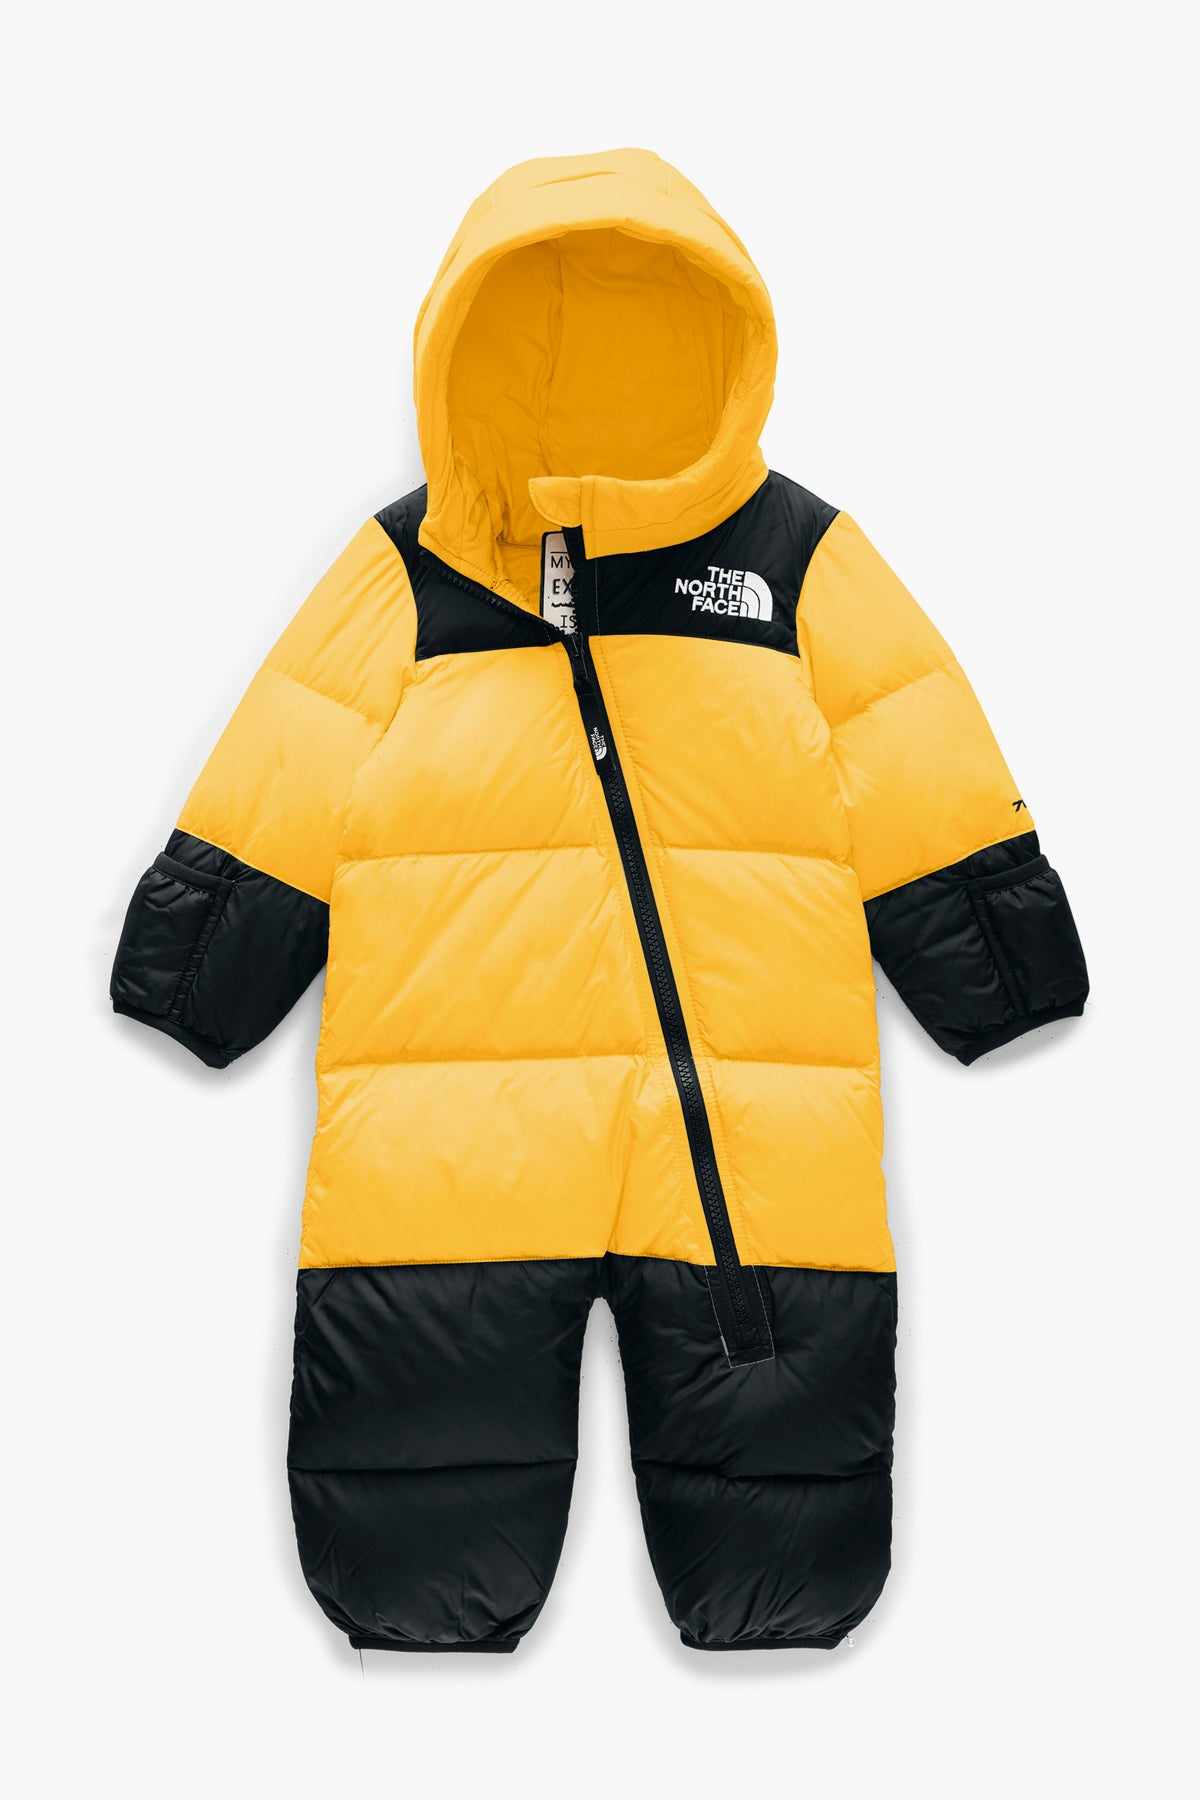 de4be09e8 The North Face | Kids Clothes - Mini Ruby Contemporary Childrenswear ...